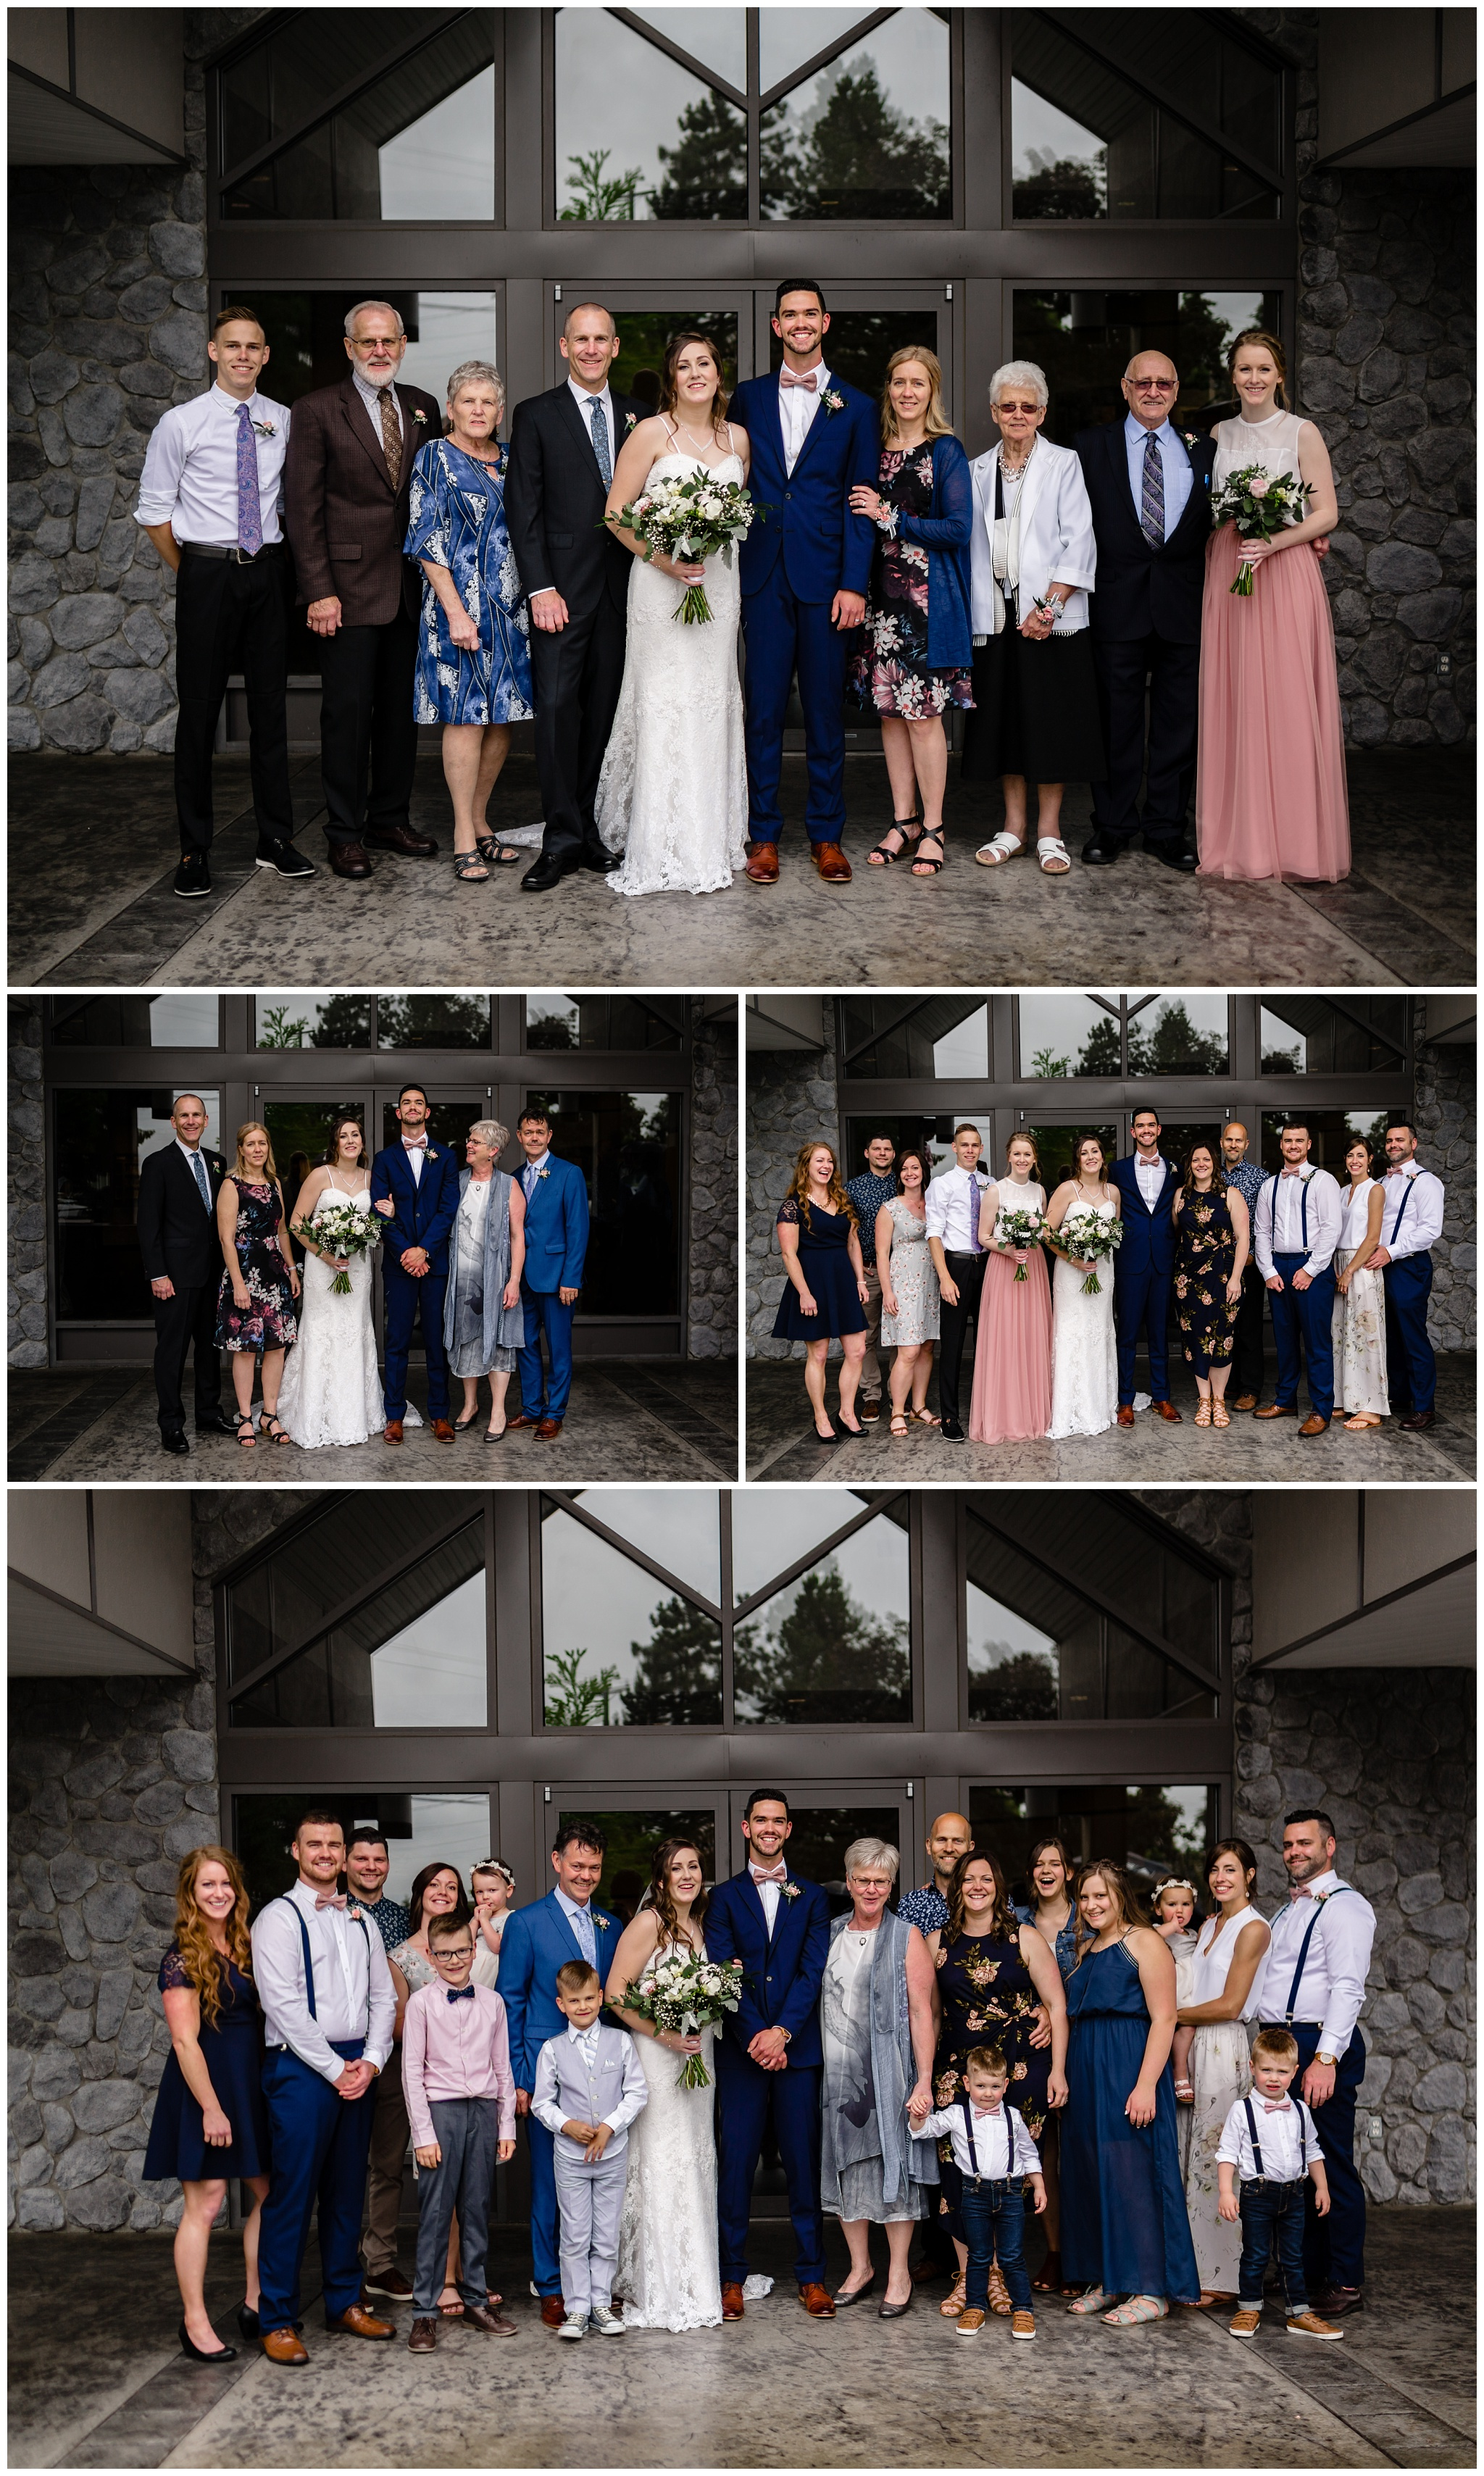 Cloverdale Canadian Reformed Church Wedding Sendall Garden Bride Groom Portraits Christian Couples Best Photographer in Langley Surrey British Columbia_0031.jpg